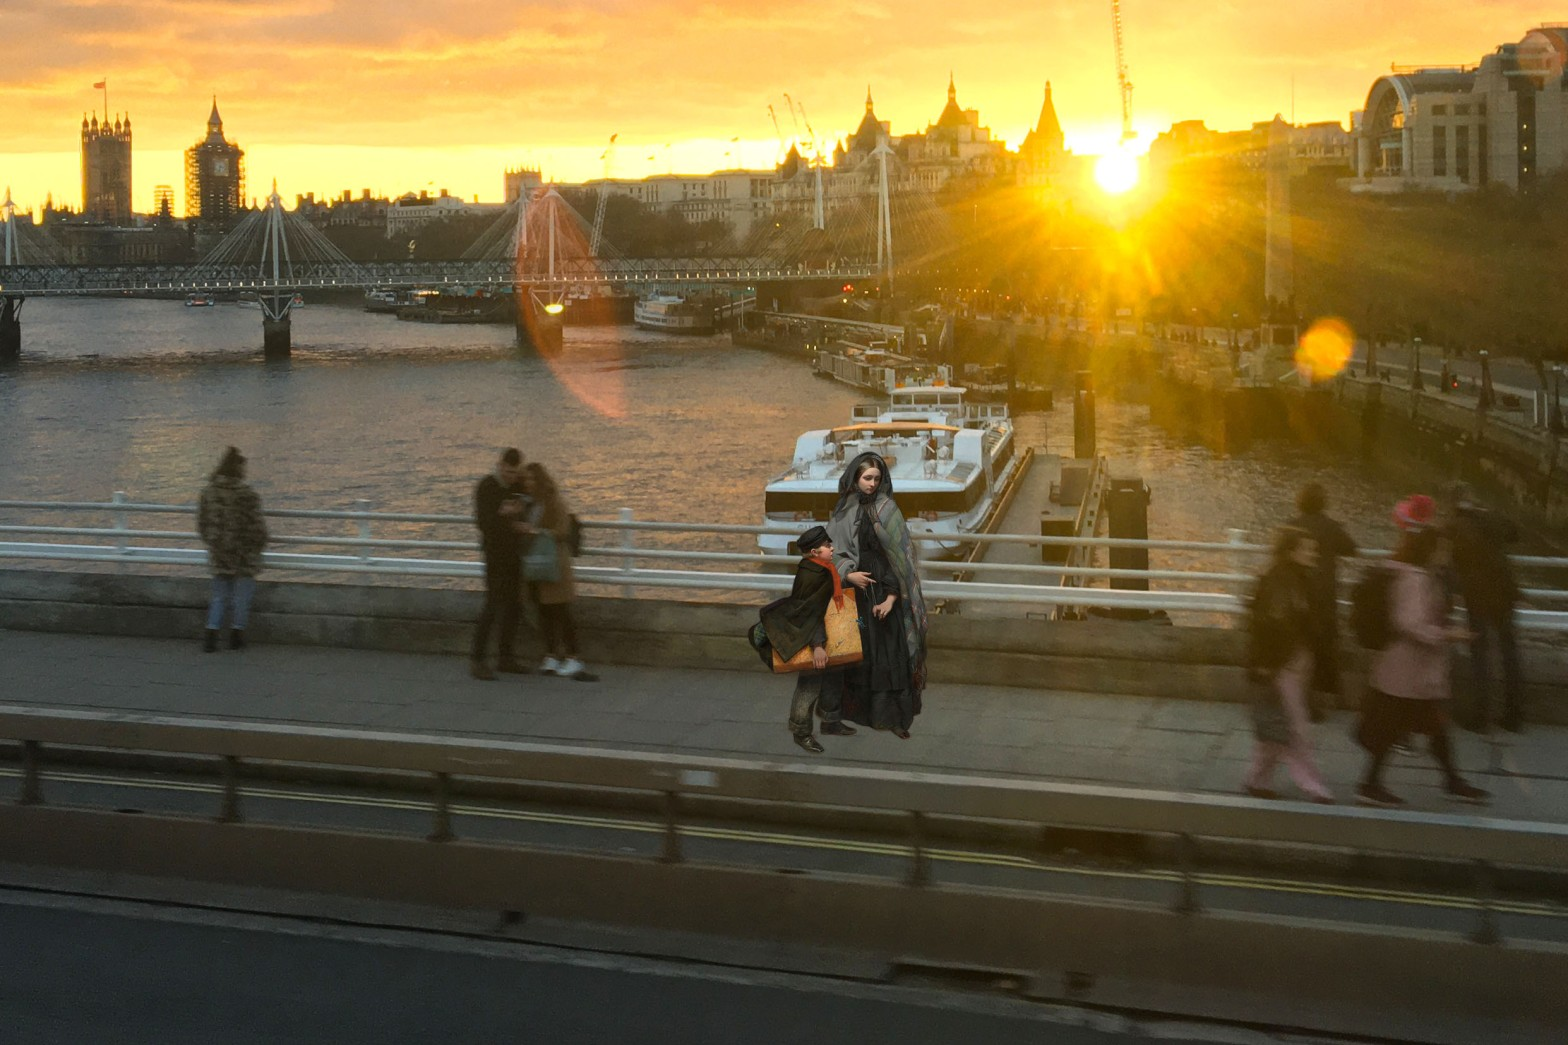 """Figures from Emily Mary Osborn's """"Nameless and Friendless"""" (1857) crossing Waterloo Bridge at sunset"""